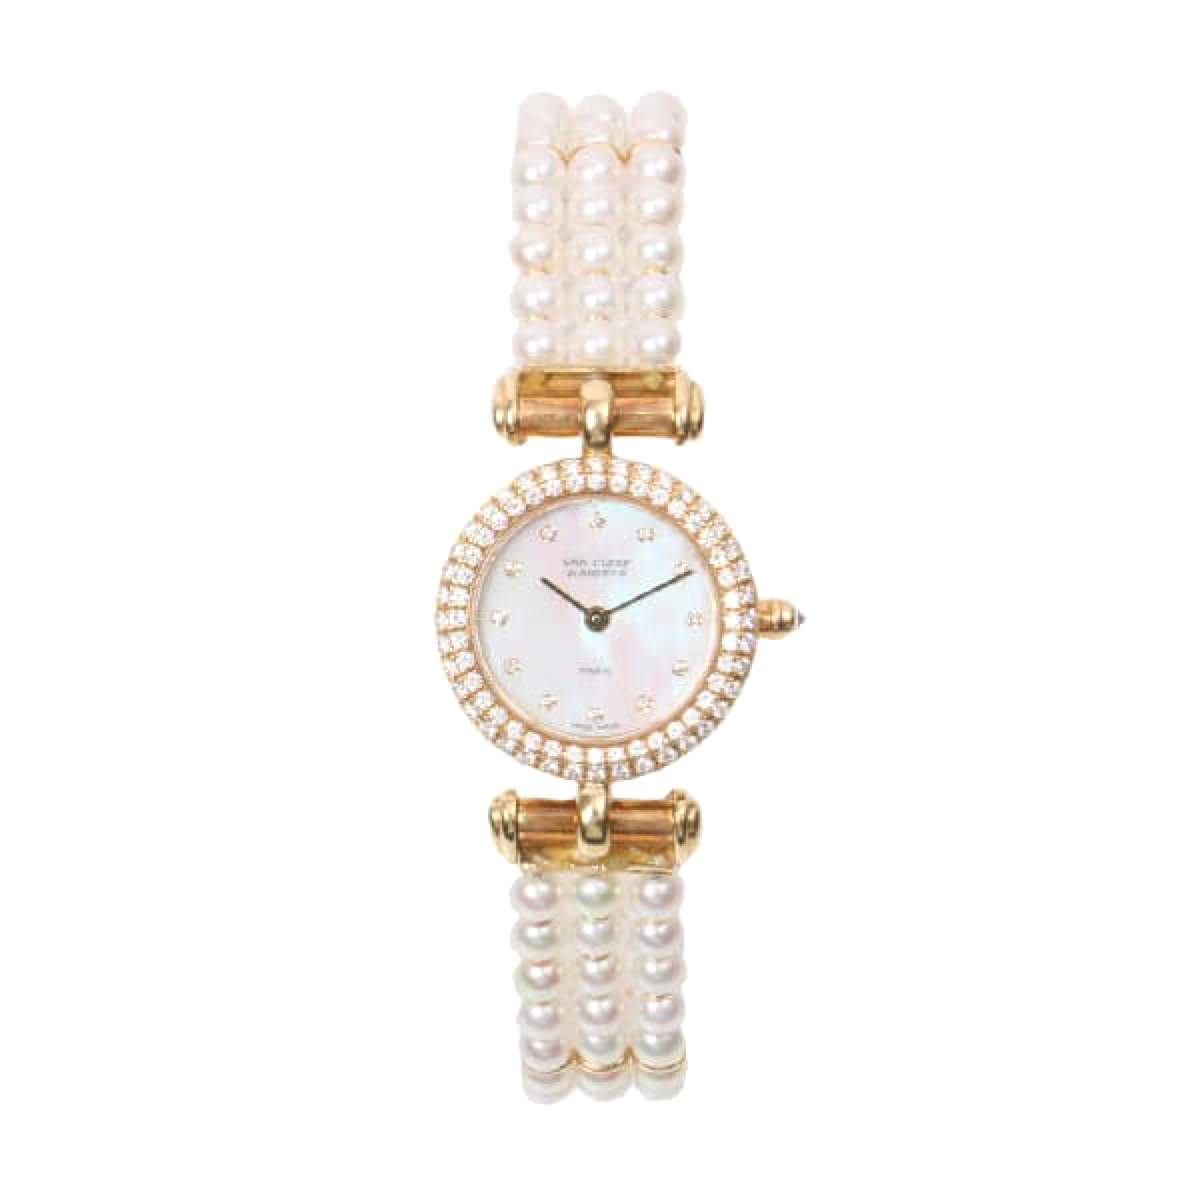 Van Cleef and Arpels fantasy bezel-set diamond watch with pearl strap